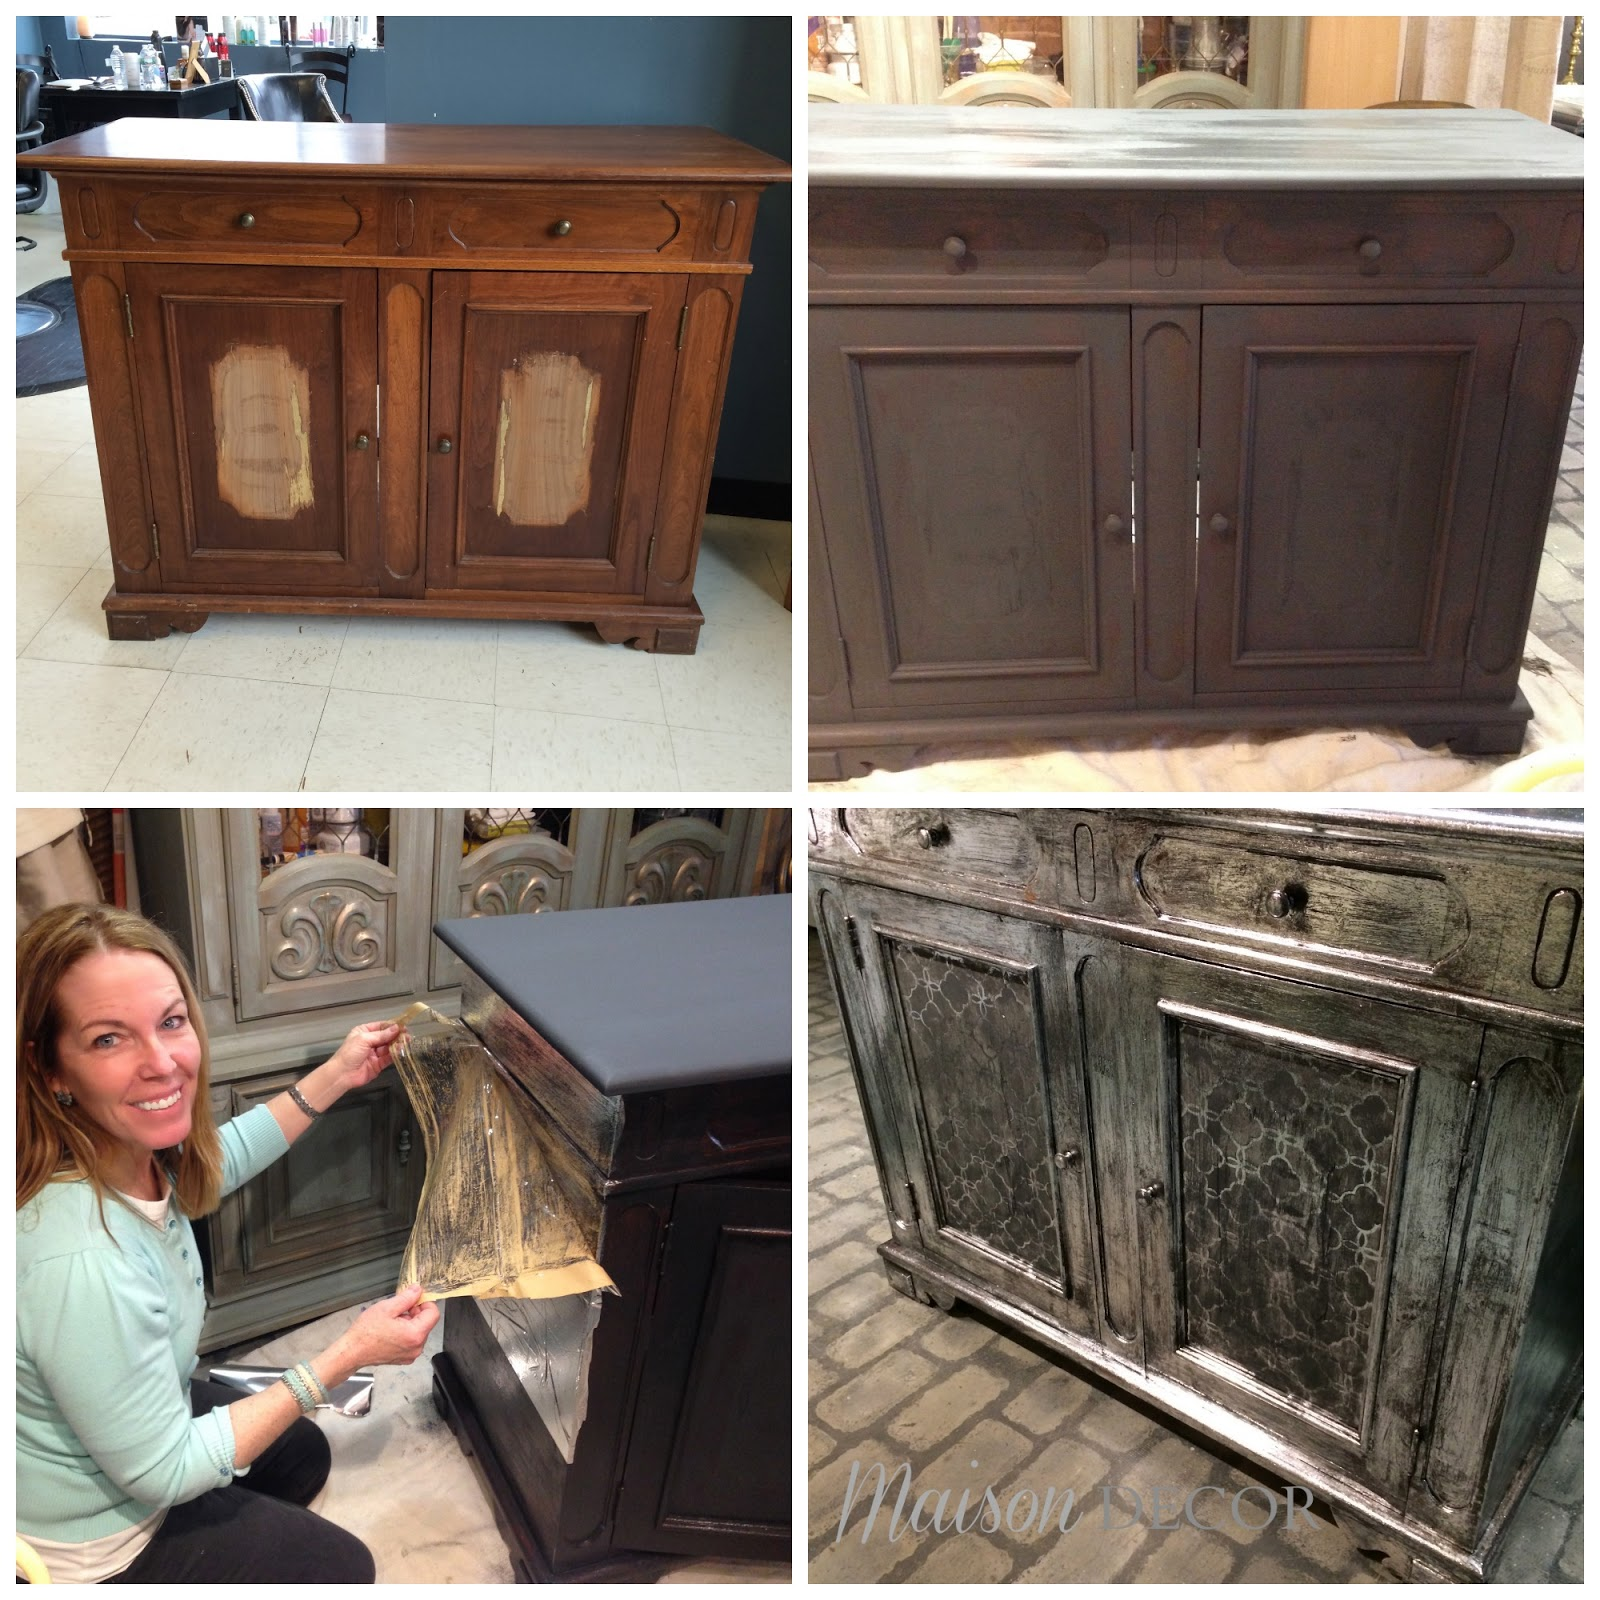 Chalk Paint Used On Kitchen Cabinets: Maison Decor: Before And After Chalk Paint Projects